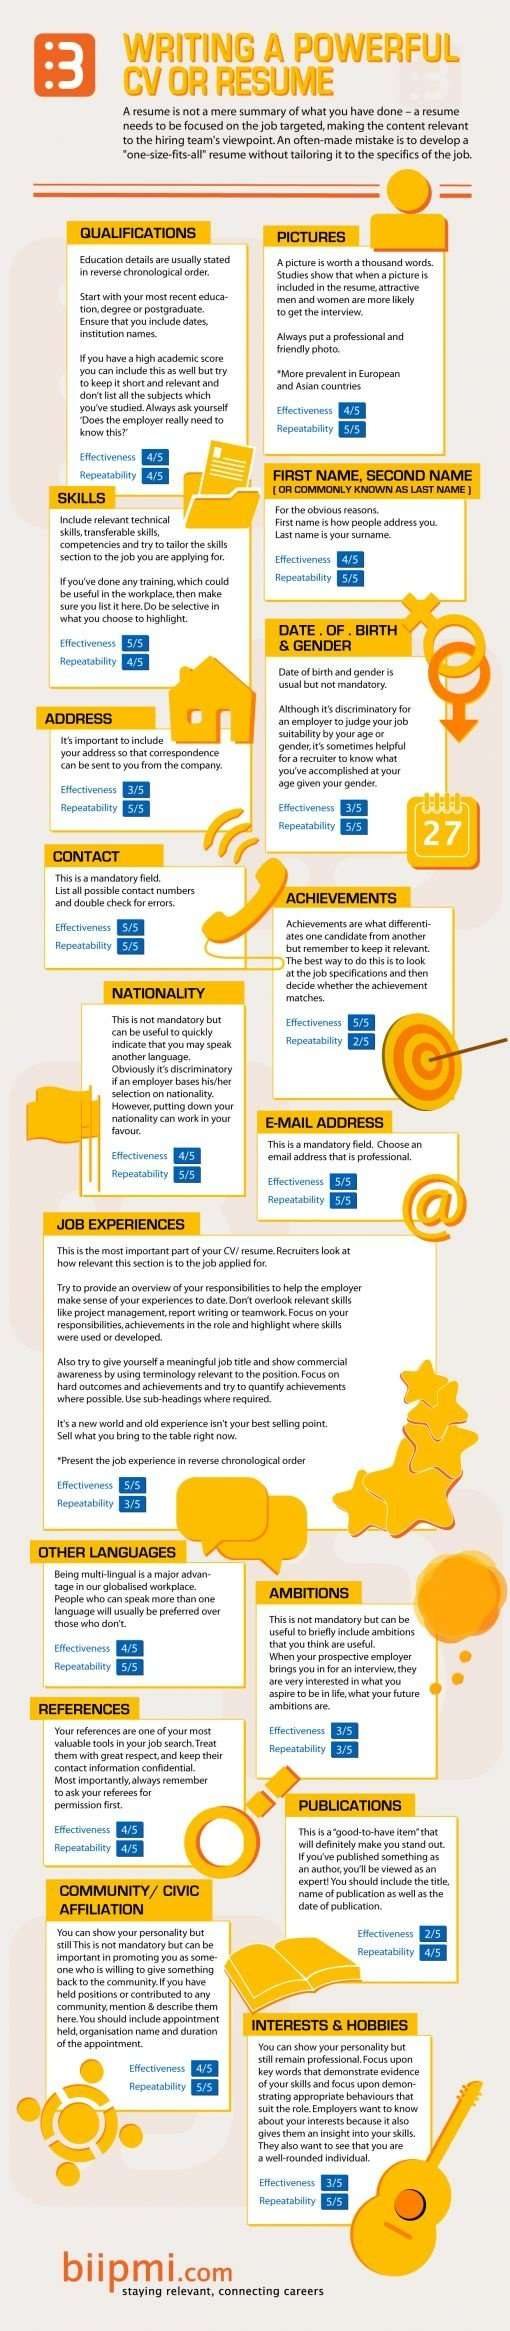 writing a powerful cv or resume job search infographics writing a powerful cv or resume